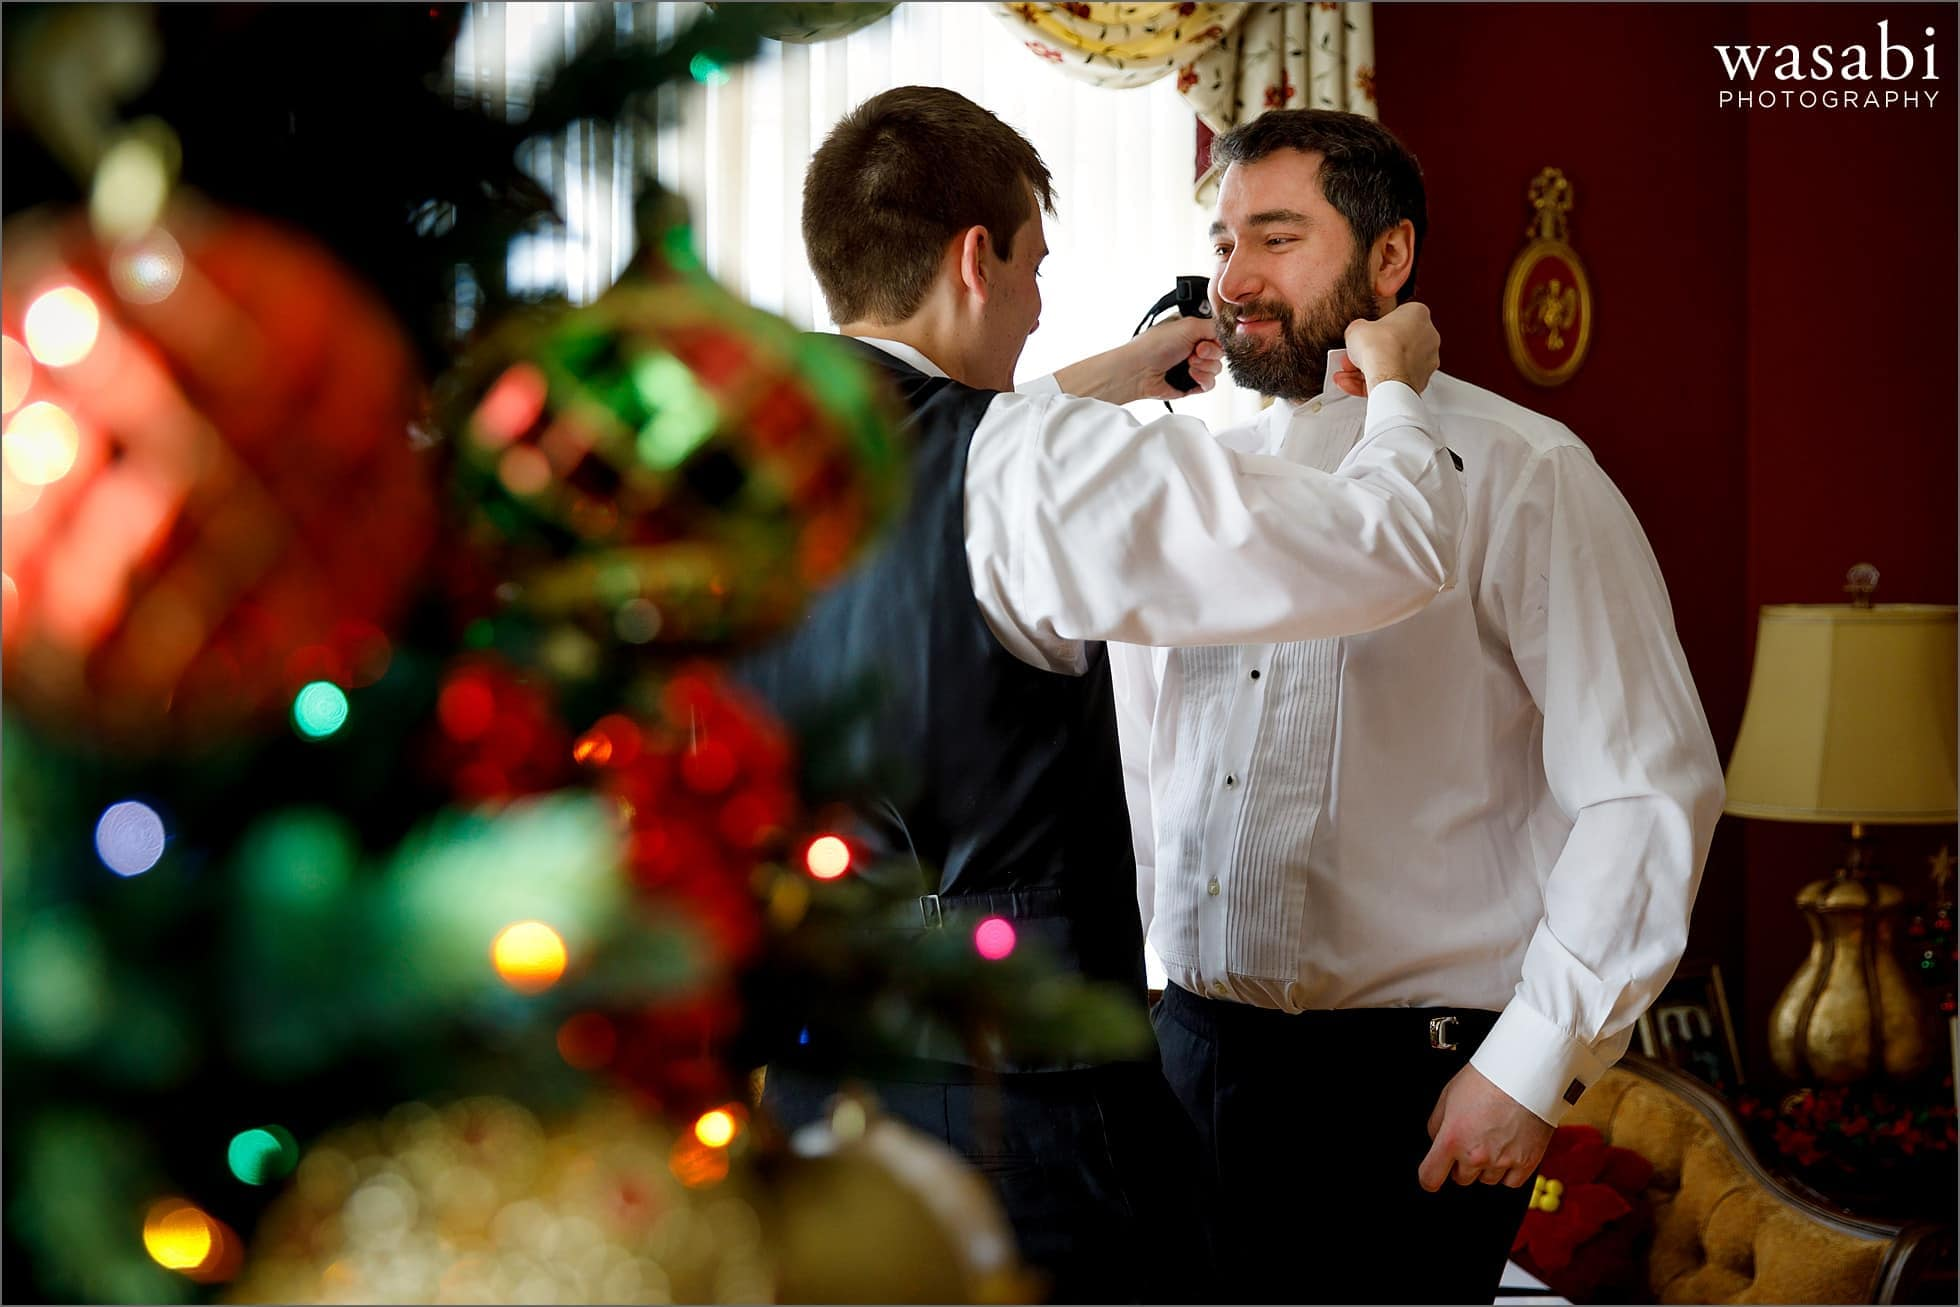 best man helps groom put on tie while getting ready for wedding